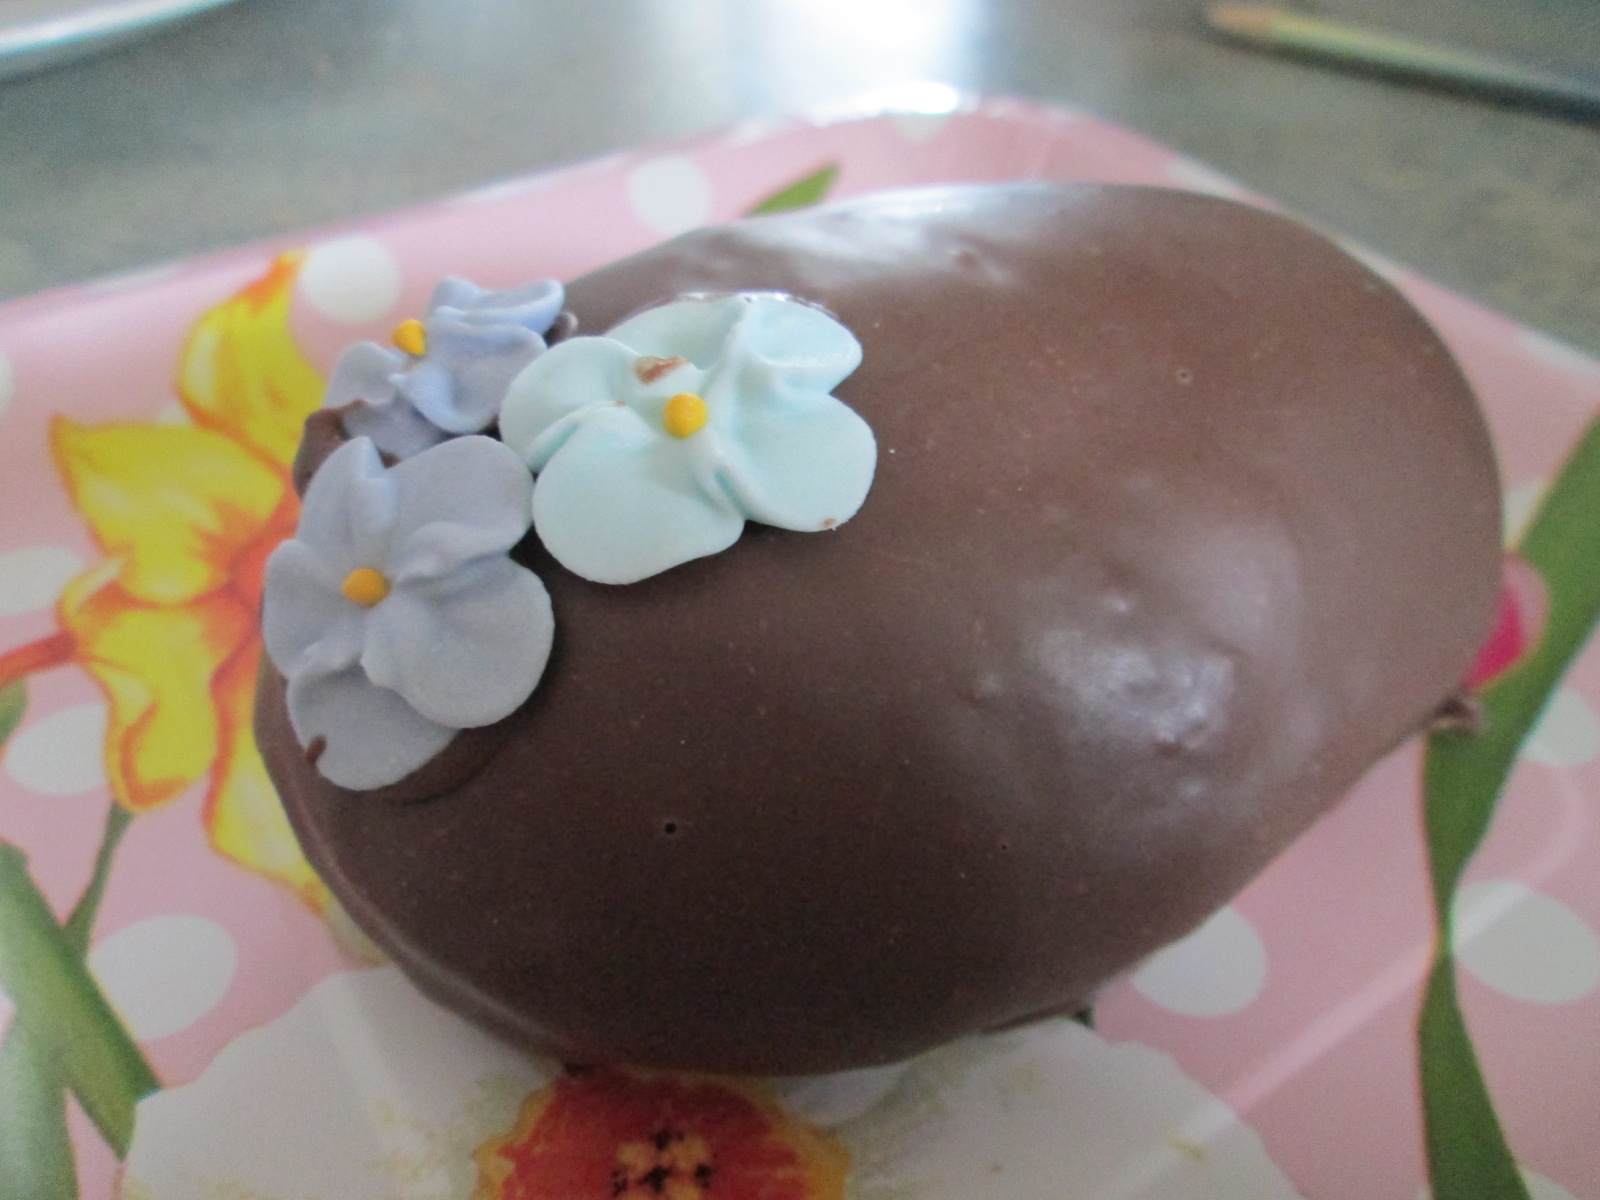 Chocolate Covered Marshmallow Eggs